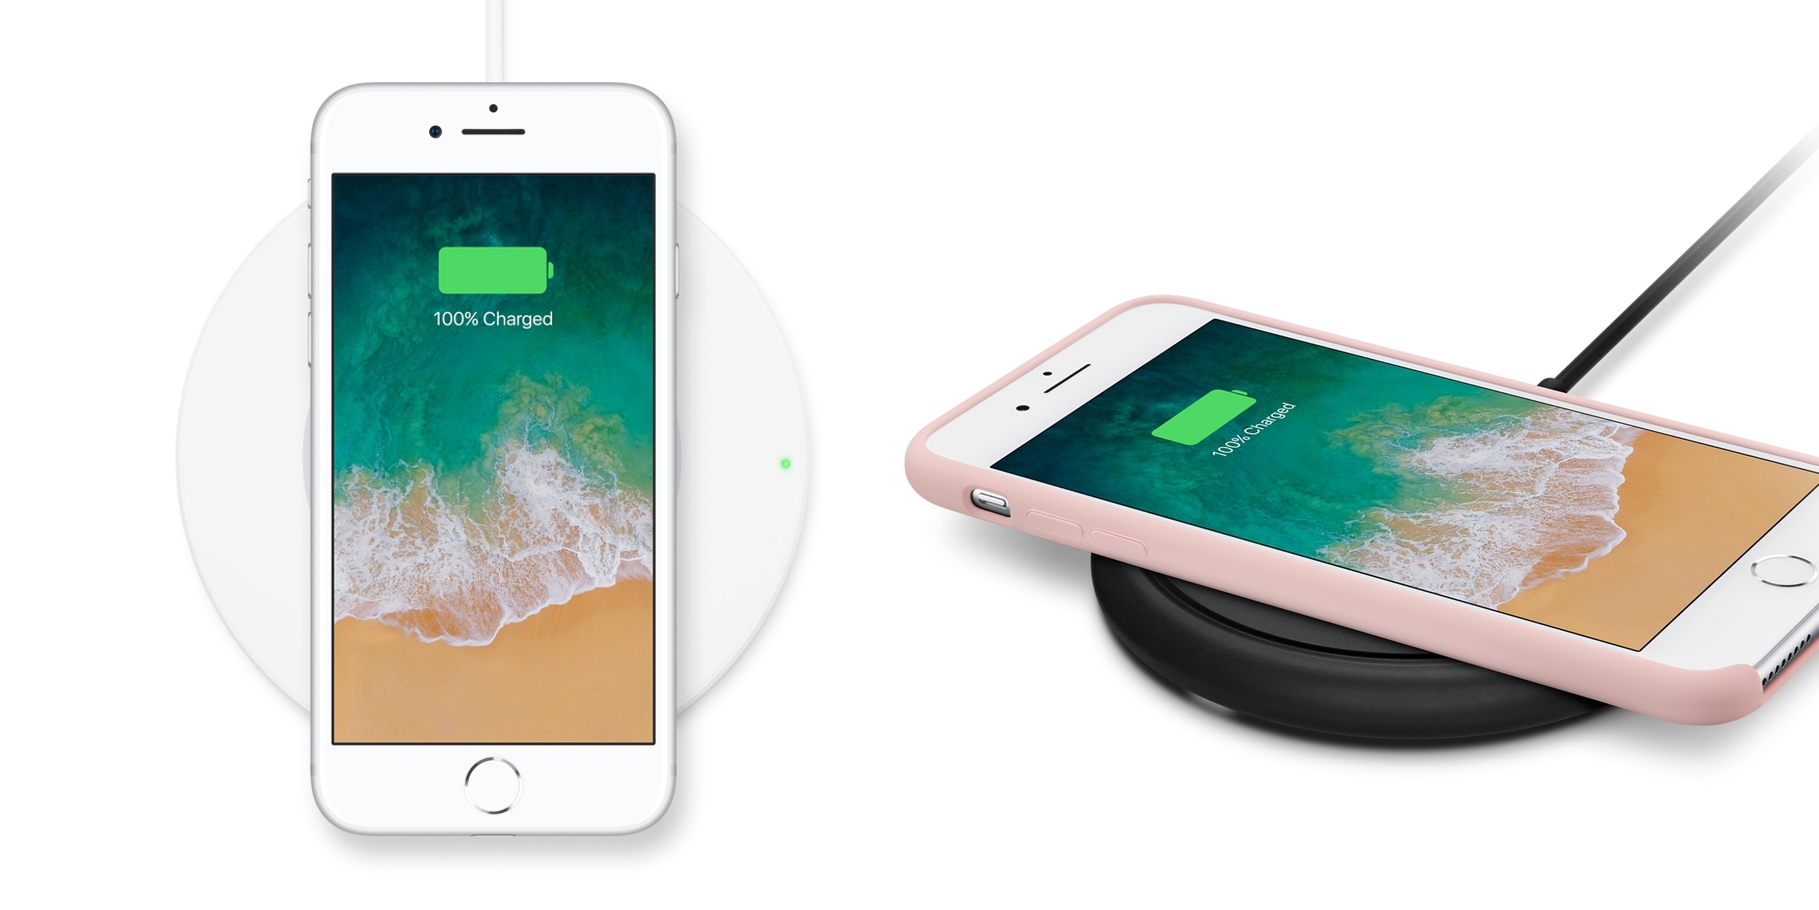 Wireless Charging Iphone Ios 11 2 Enables 7 5w Wireless Charging For Iphone 8 And Iphone X